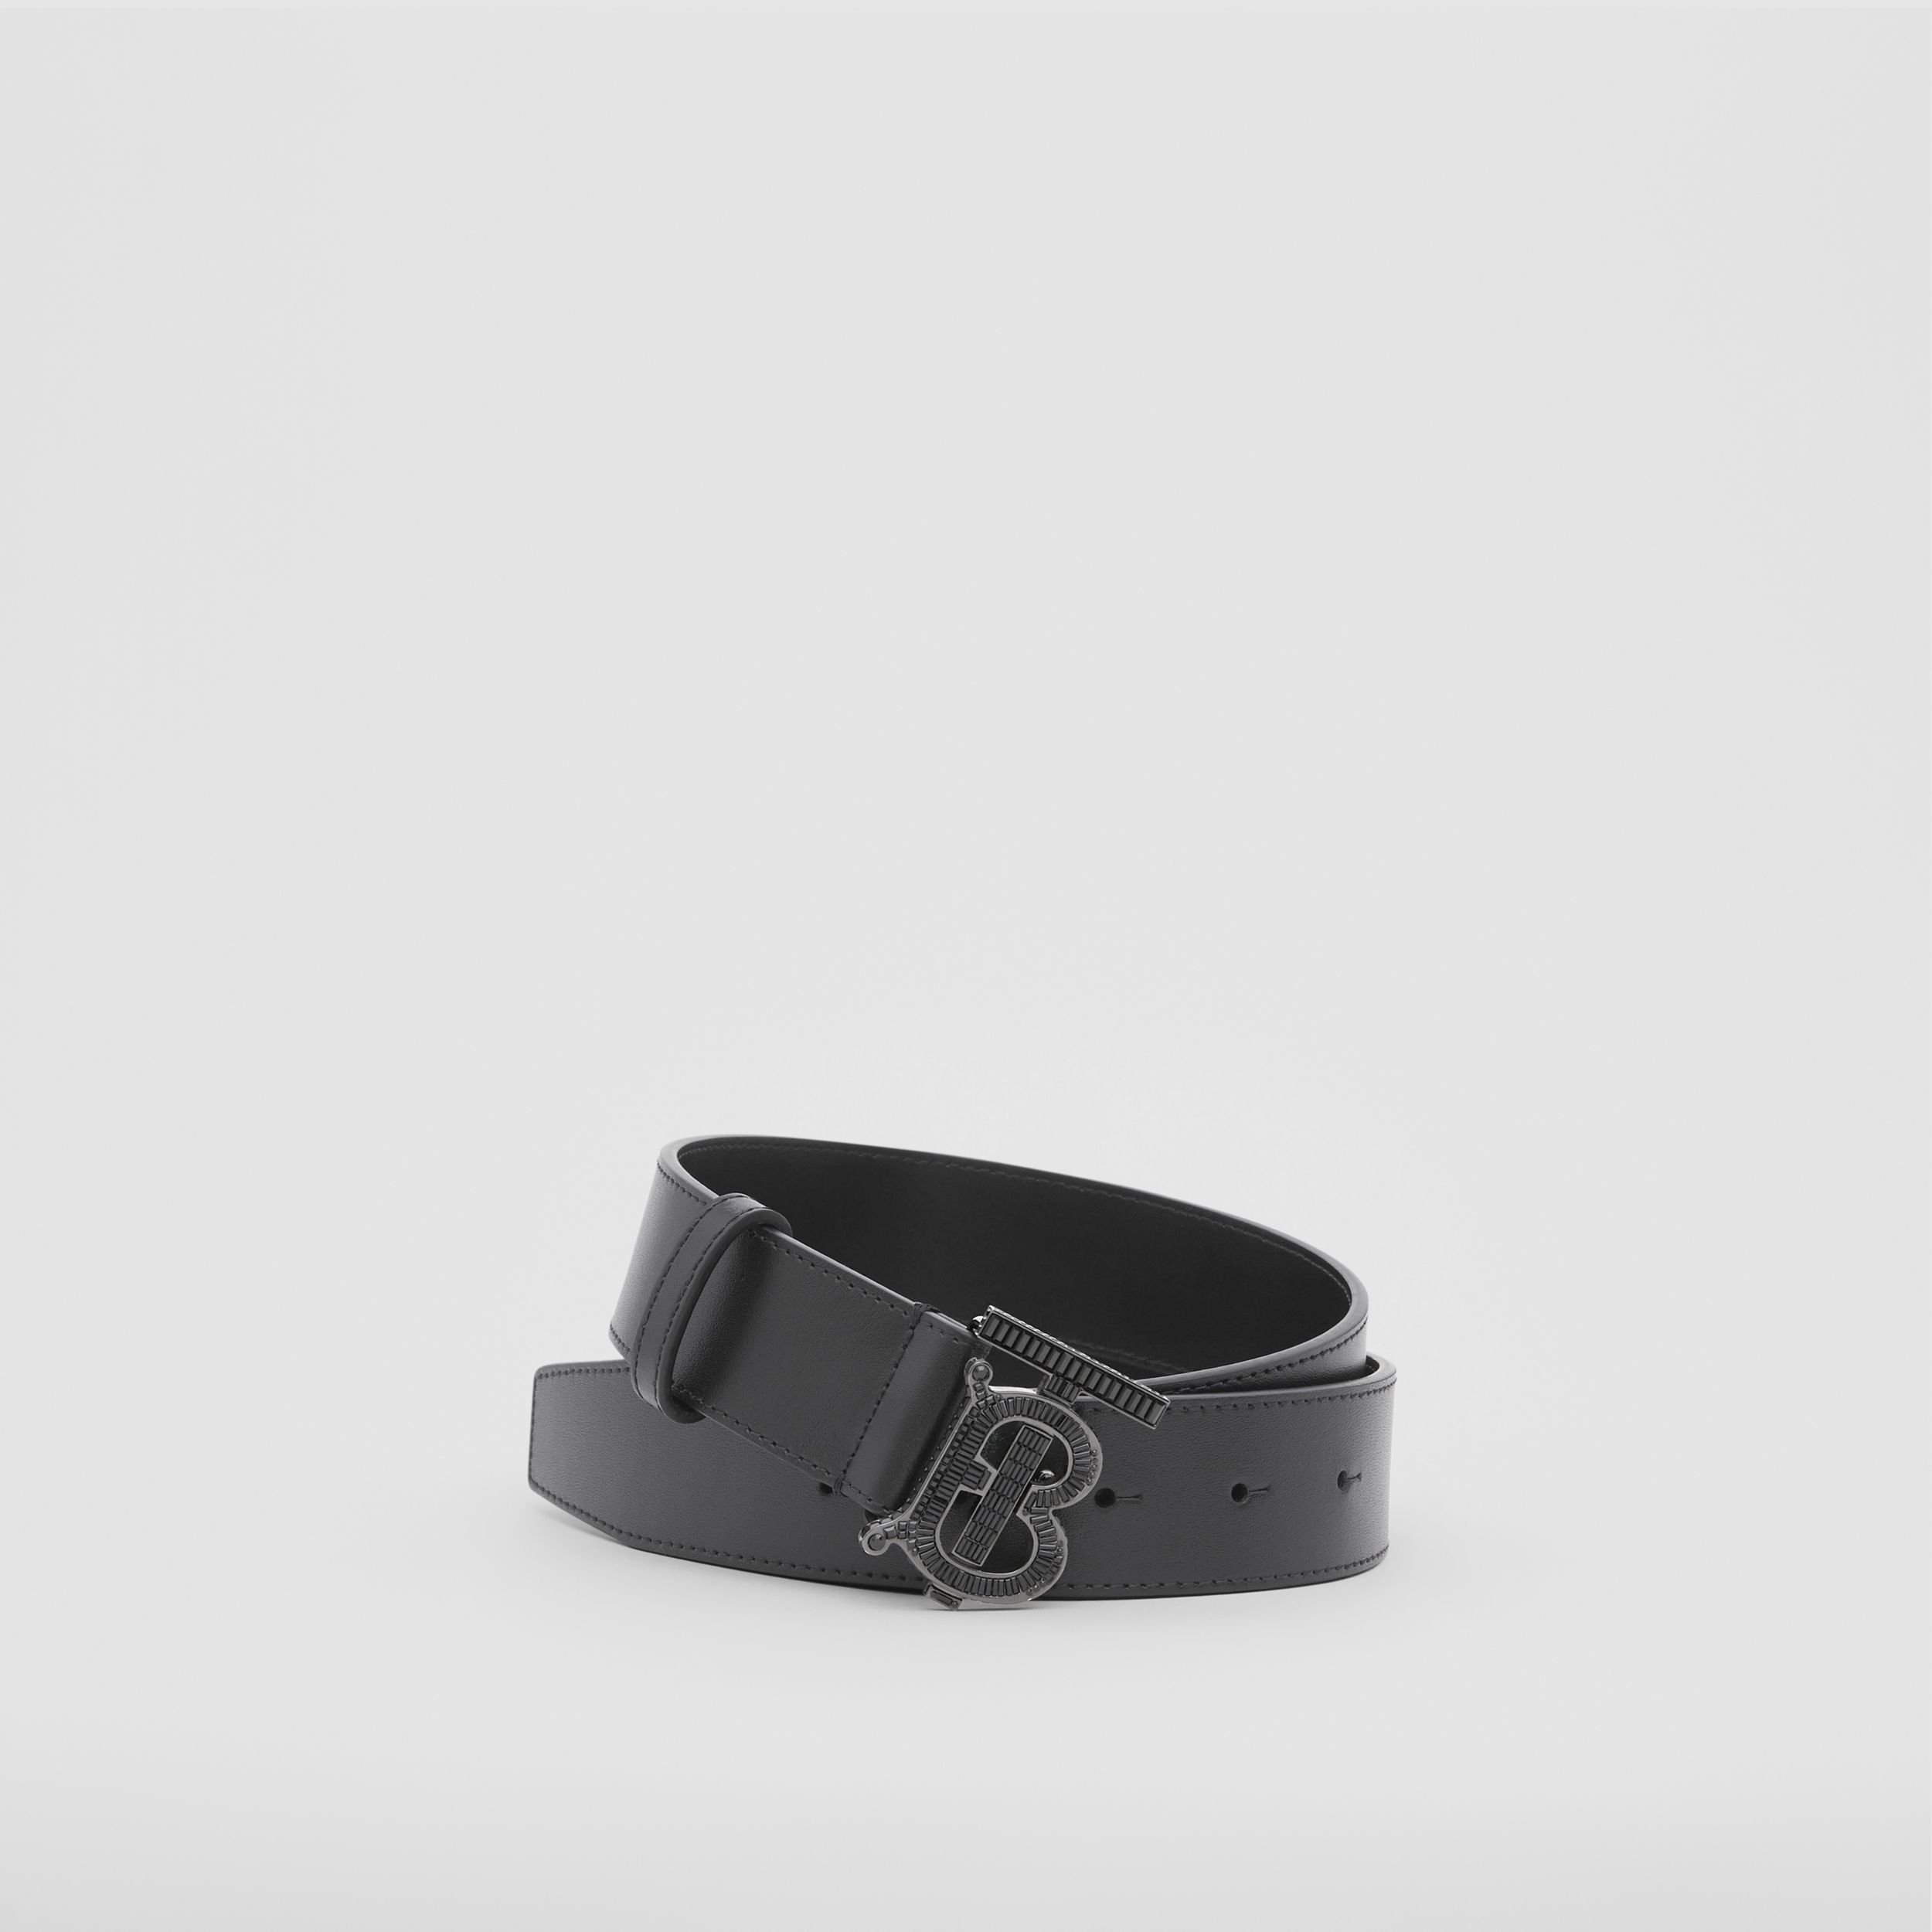 Crystal Monogram Motif Leather Belt in Black - Men | Burberry - 1